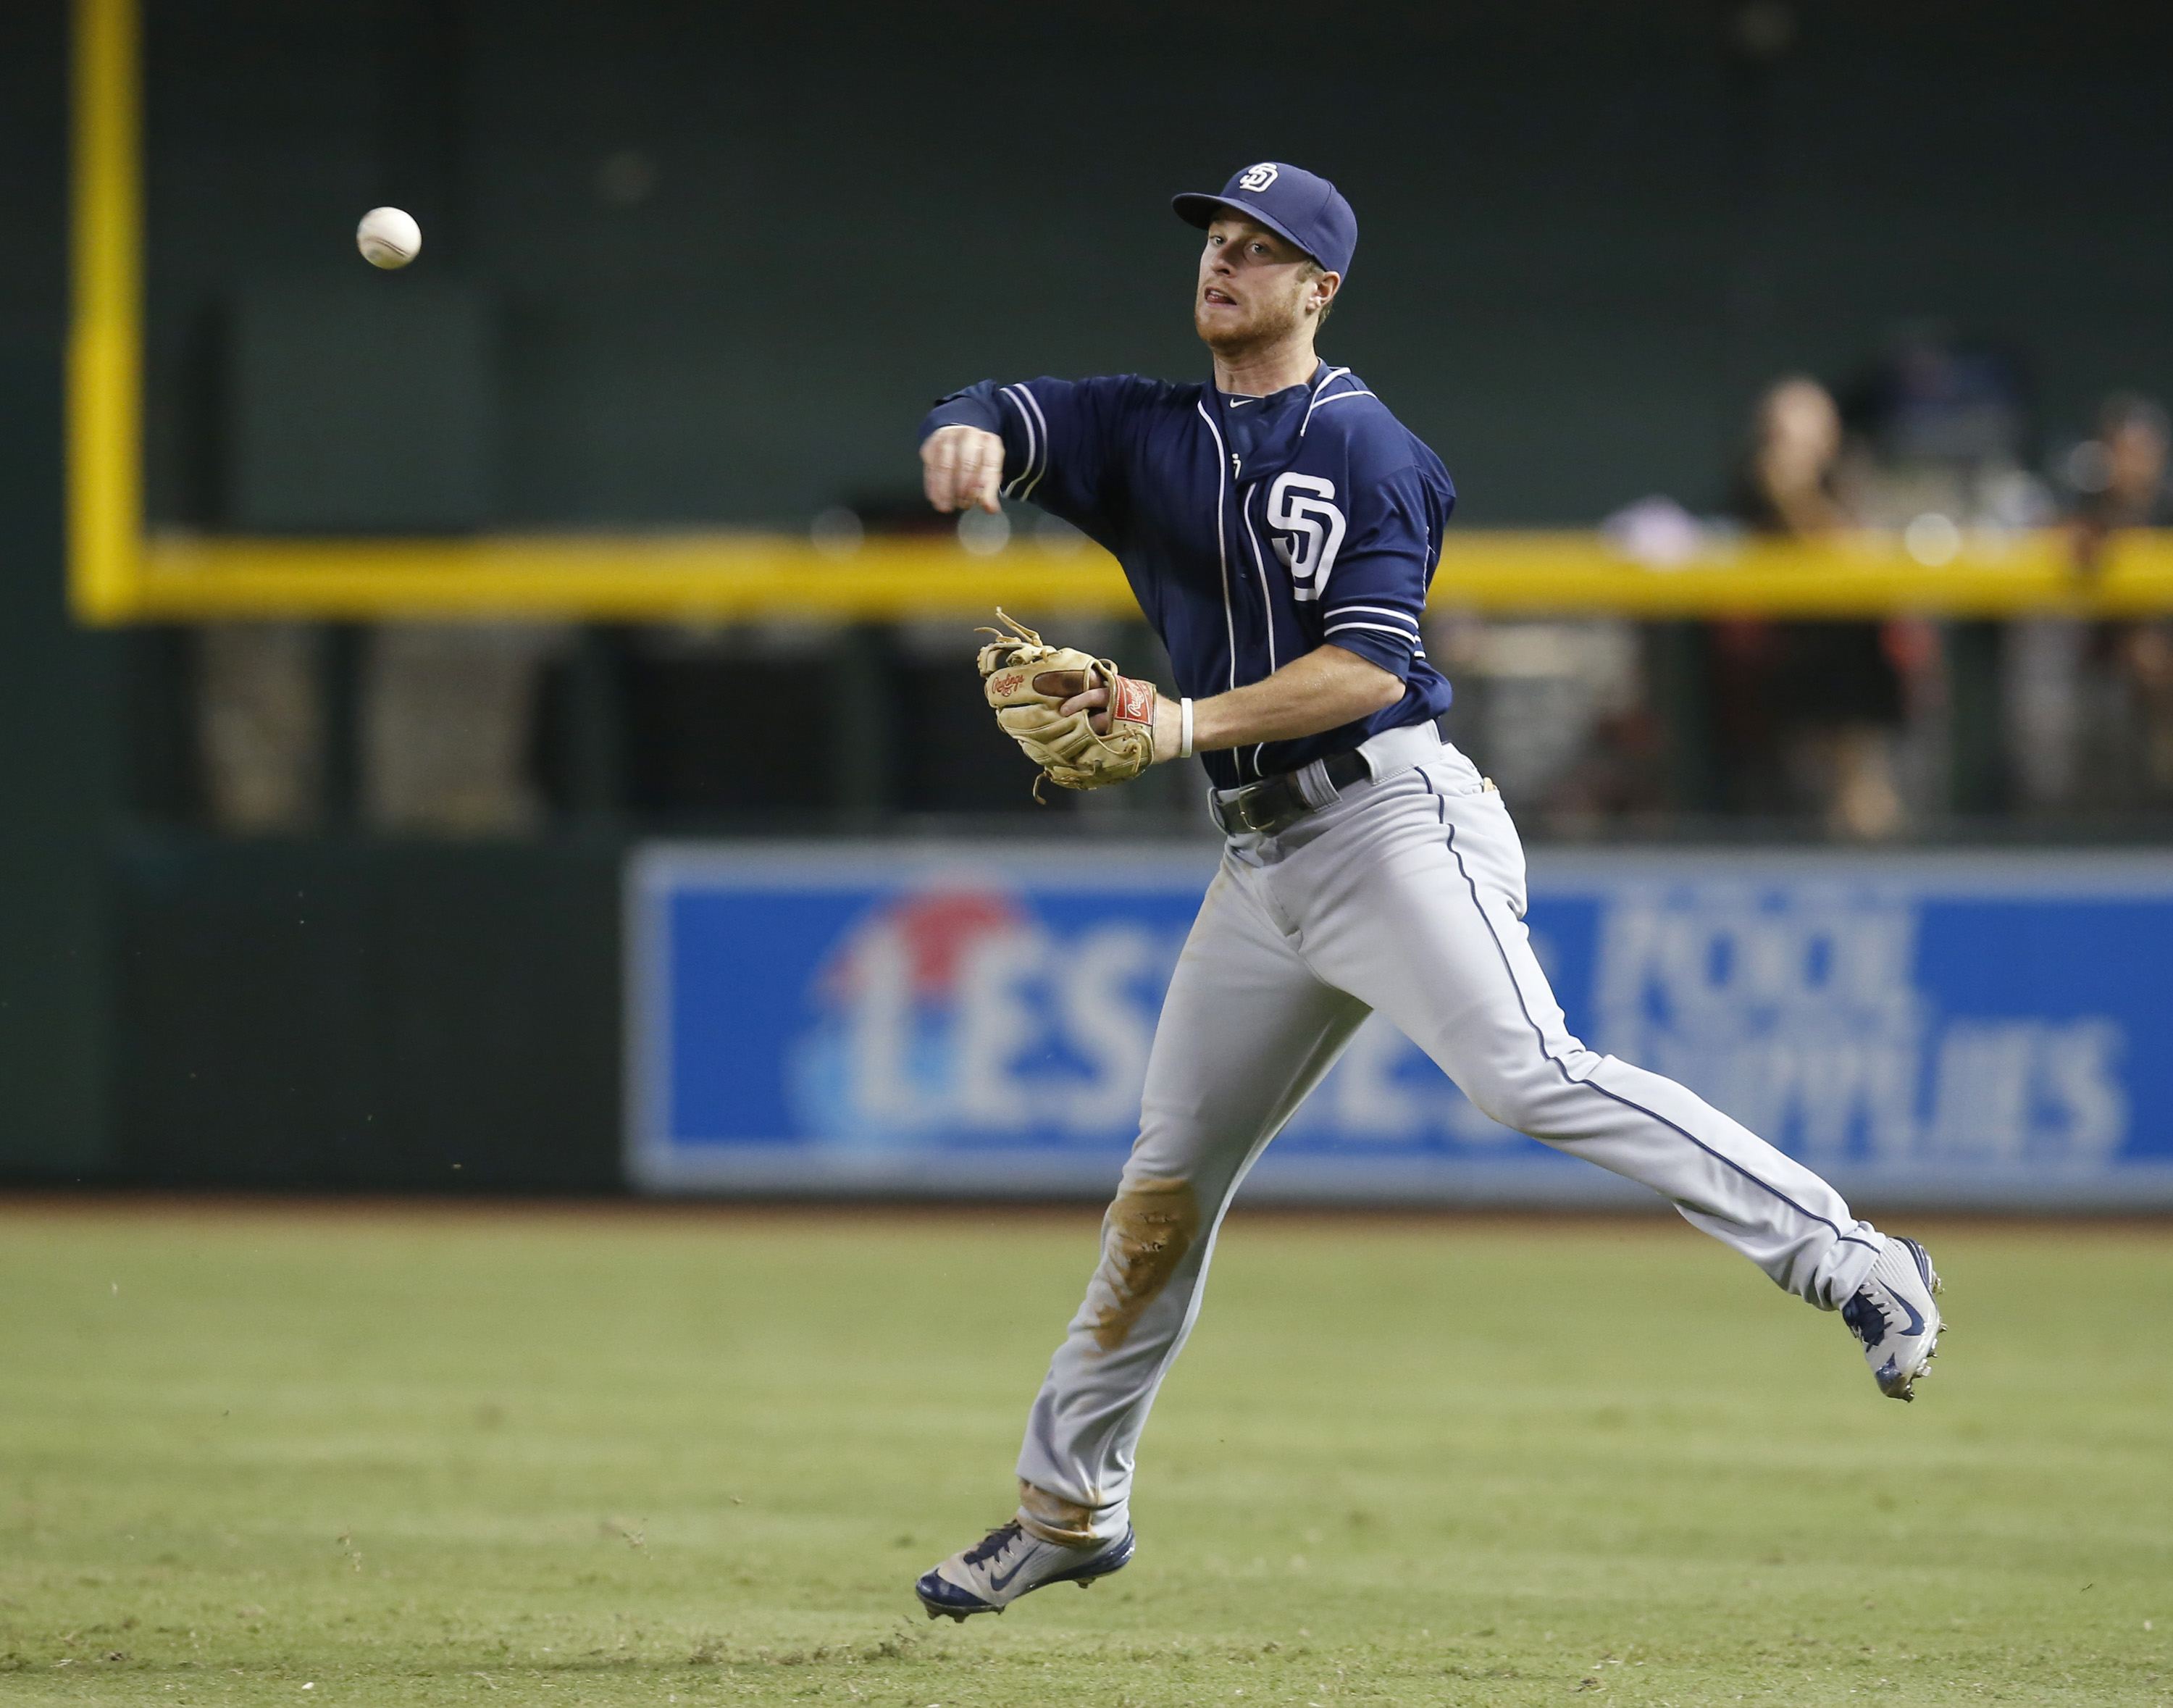 San Diego Padres second baseman Cory Spangenberg throws after fielding a grounder by Arizona Diamondbacks' Brandon Drury, who was safe at first with a single during the seventh inning of a baseball game, Tuesday, Sept. 15, 2015, in Phoenix. (AP Photo/Rick